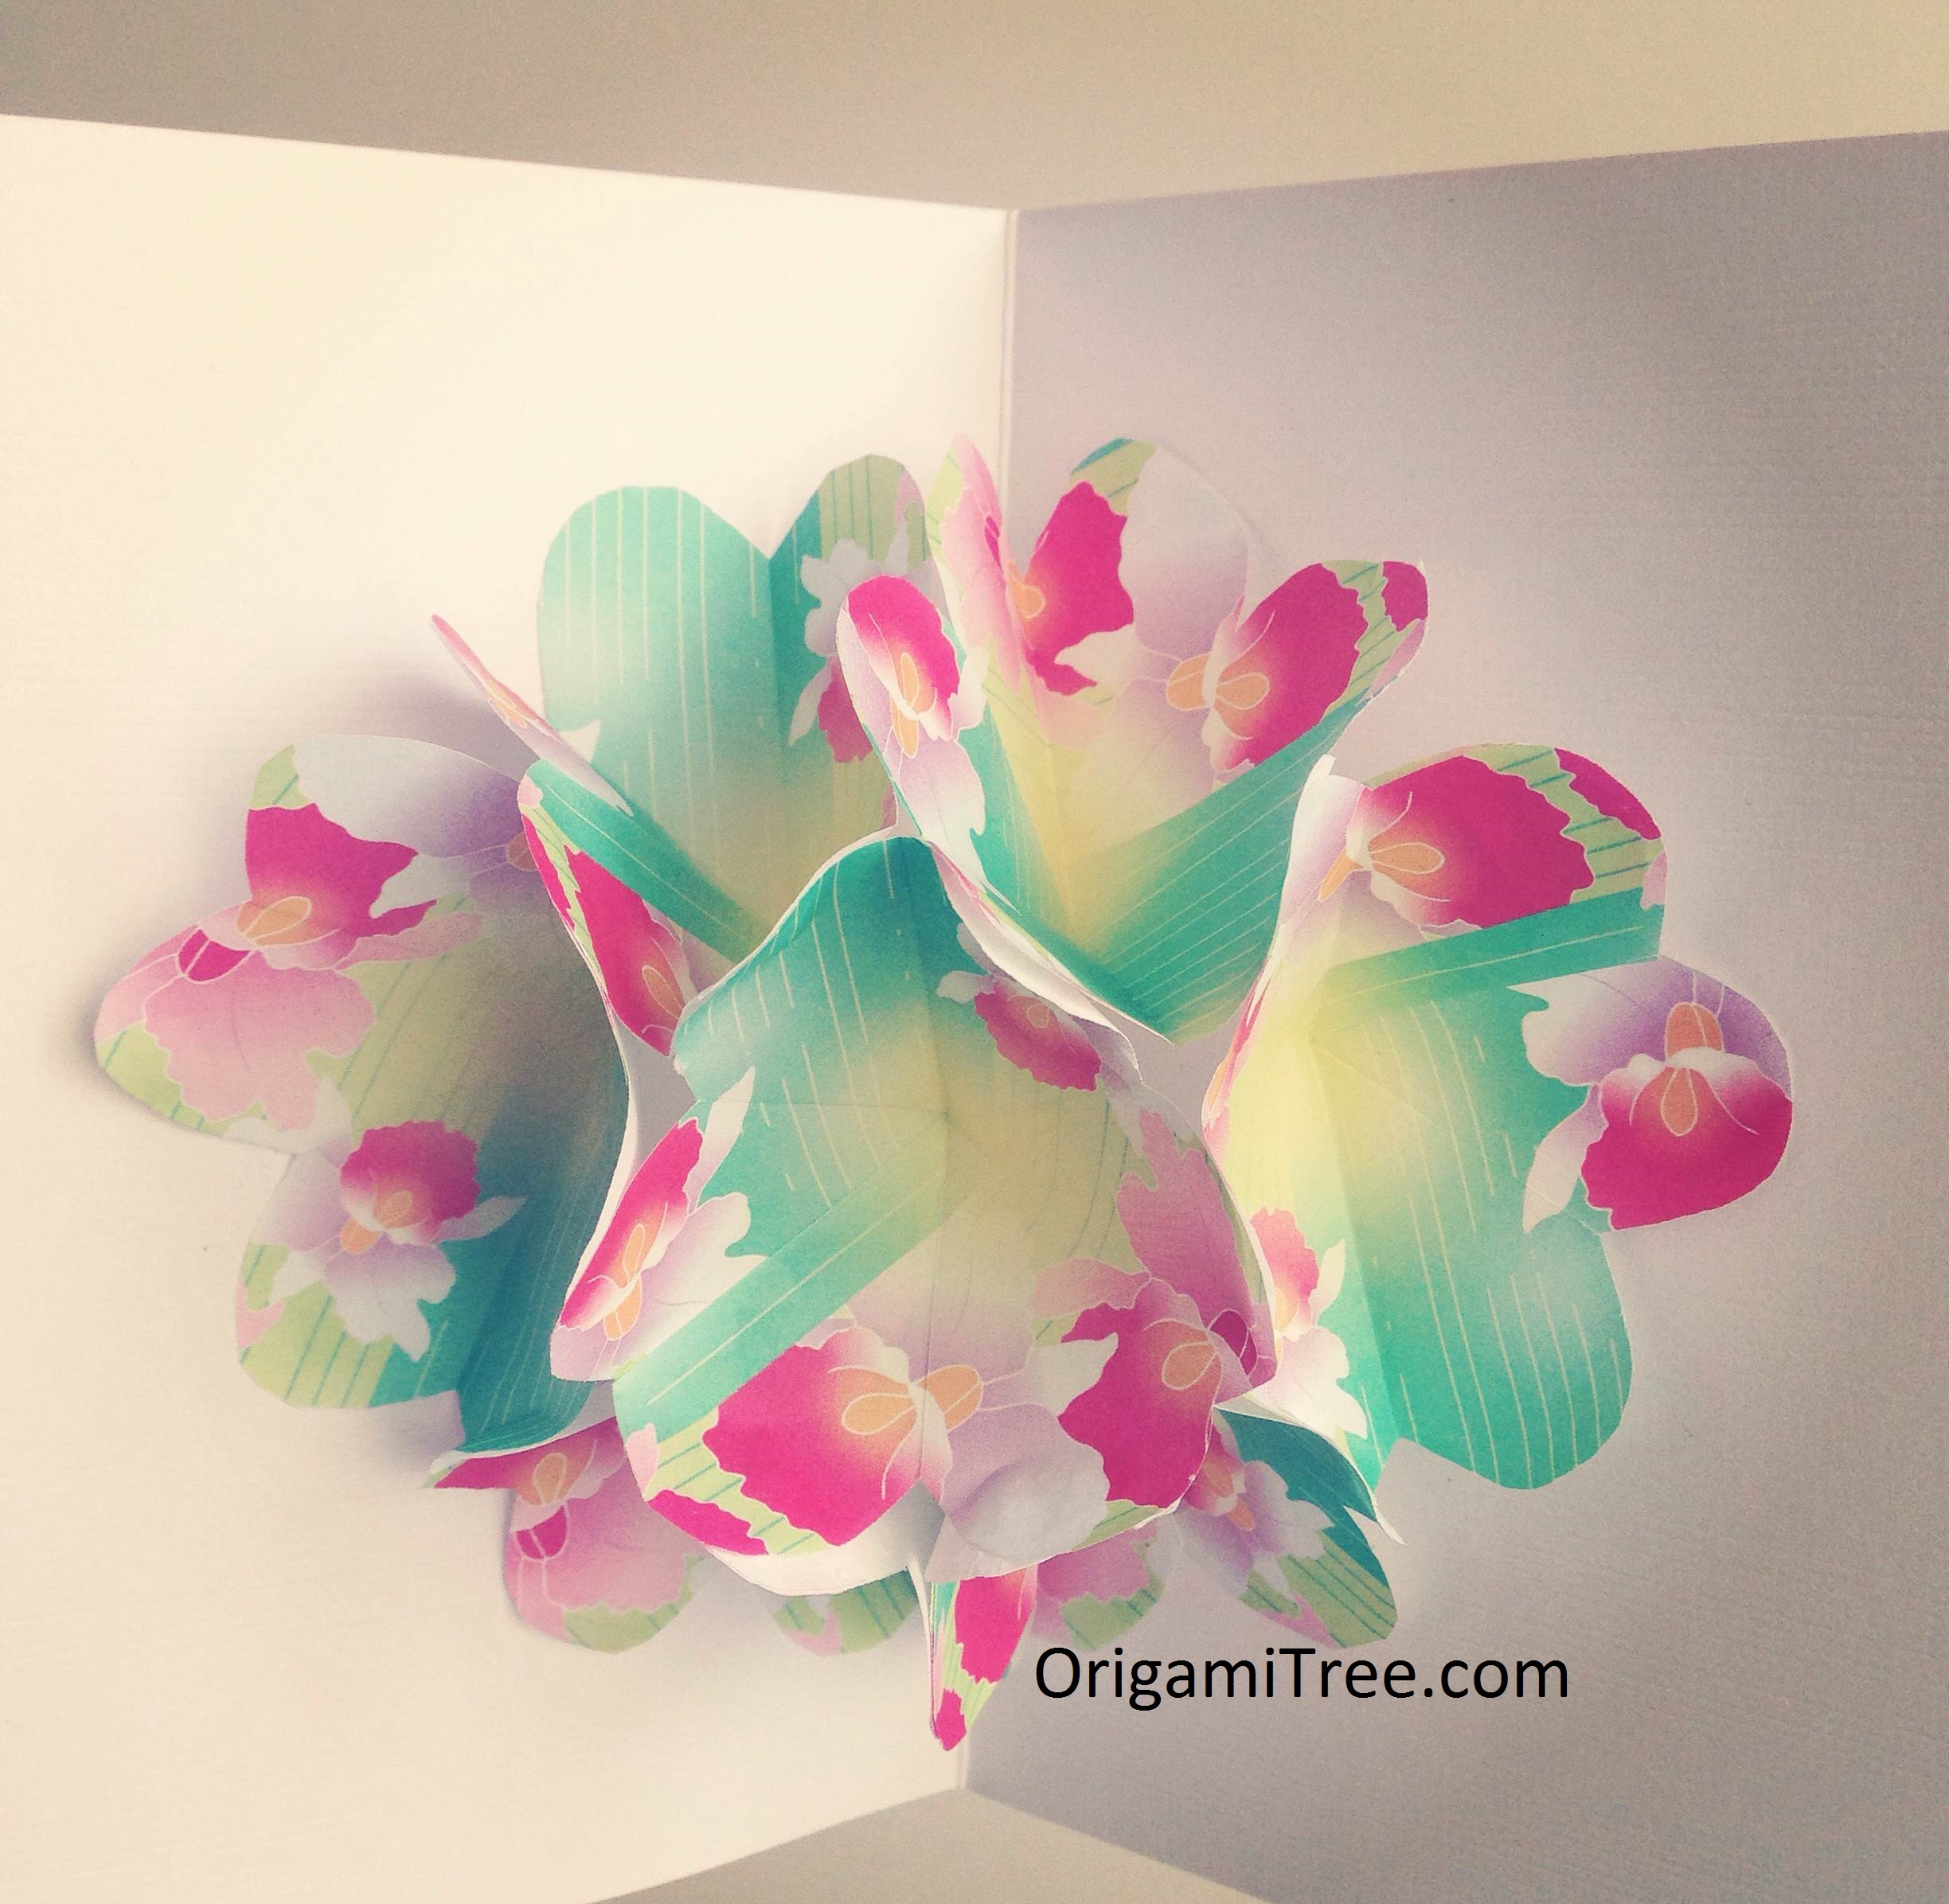 Flower Pop Up Card Origami Origamitree Origamitree